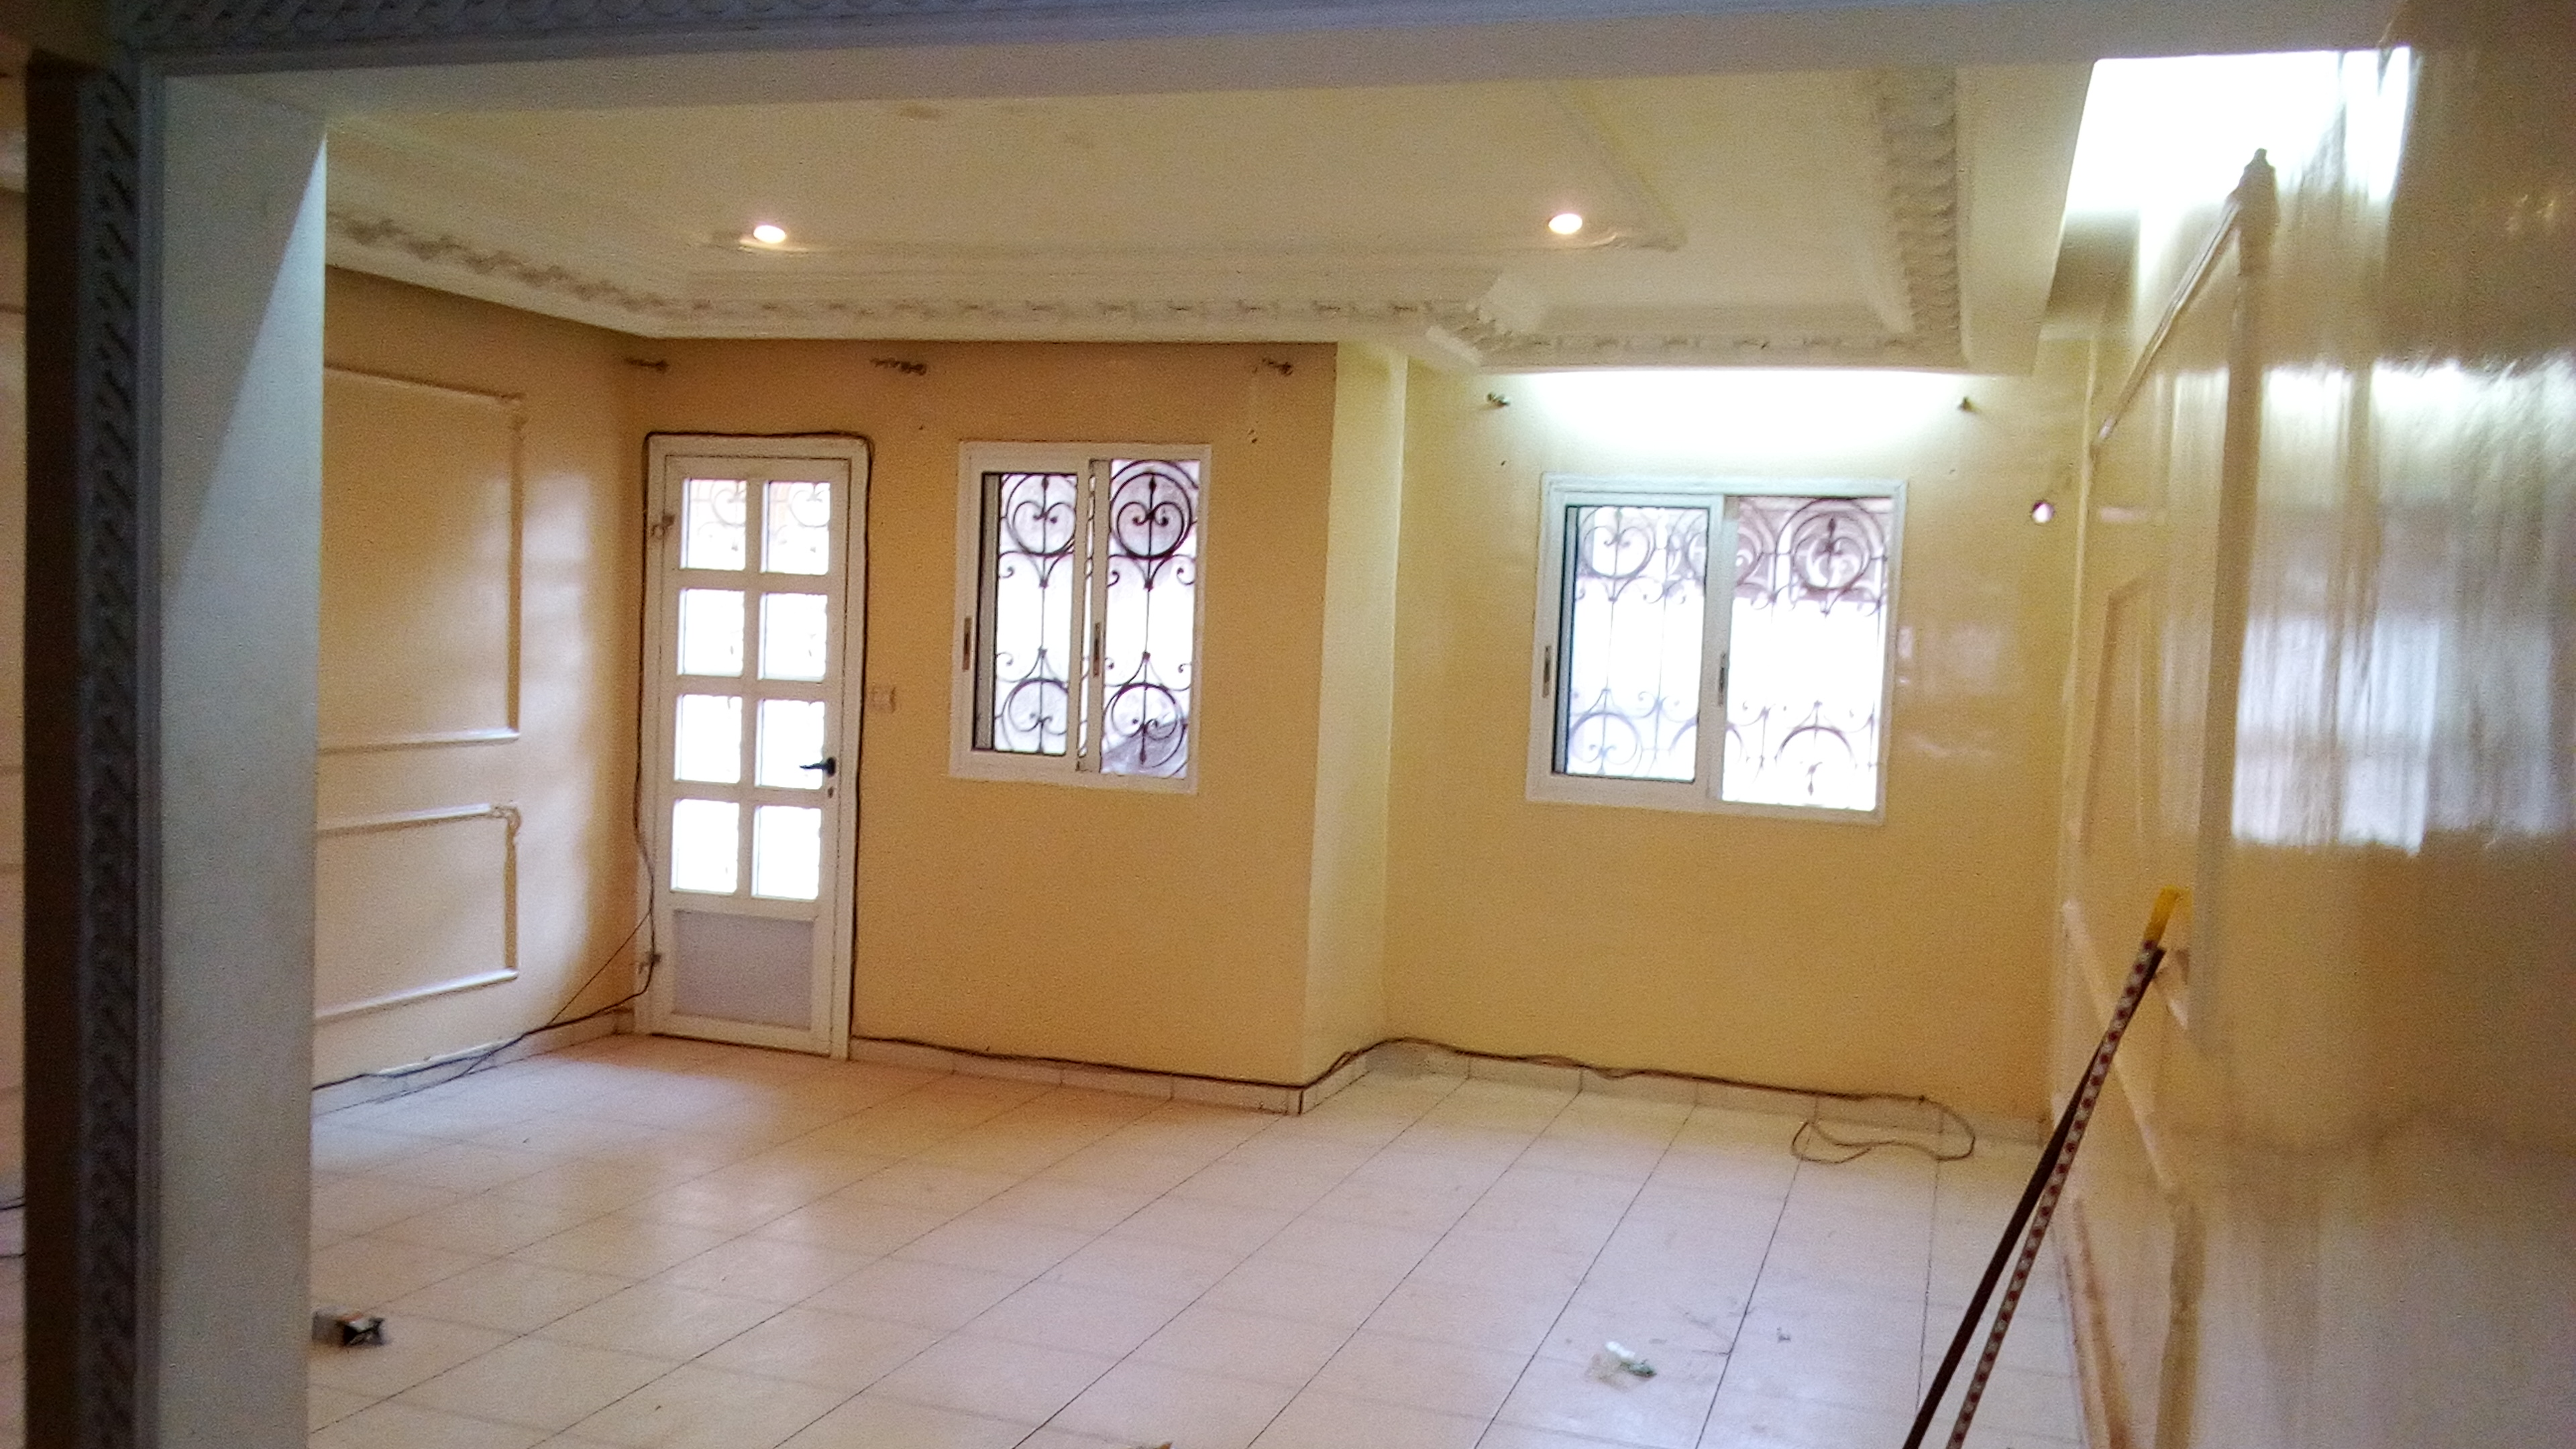 Apartment to rent - Yaoundé, Bastos, pas loin du carrefour - 1 living room(s), 2 bedroom(s), 3 bathroom(s) - 350 000 FCFA / month